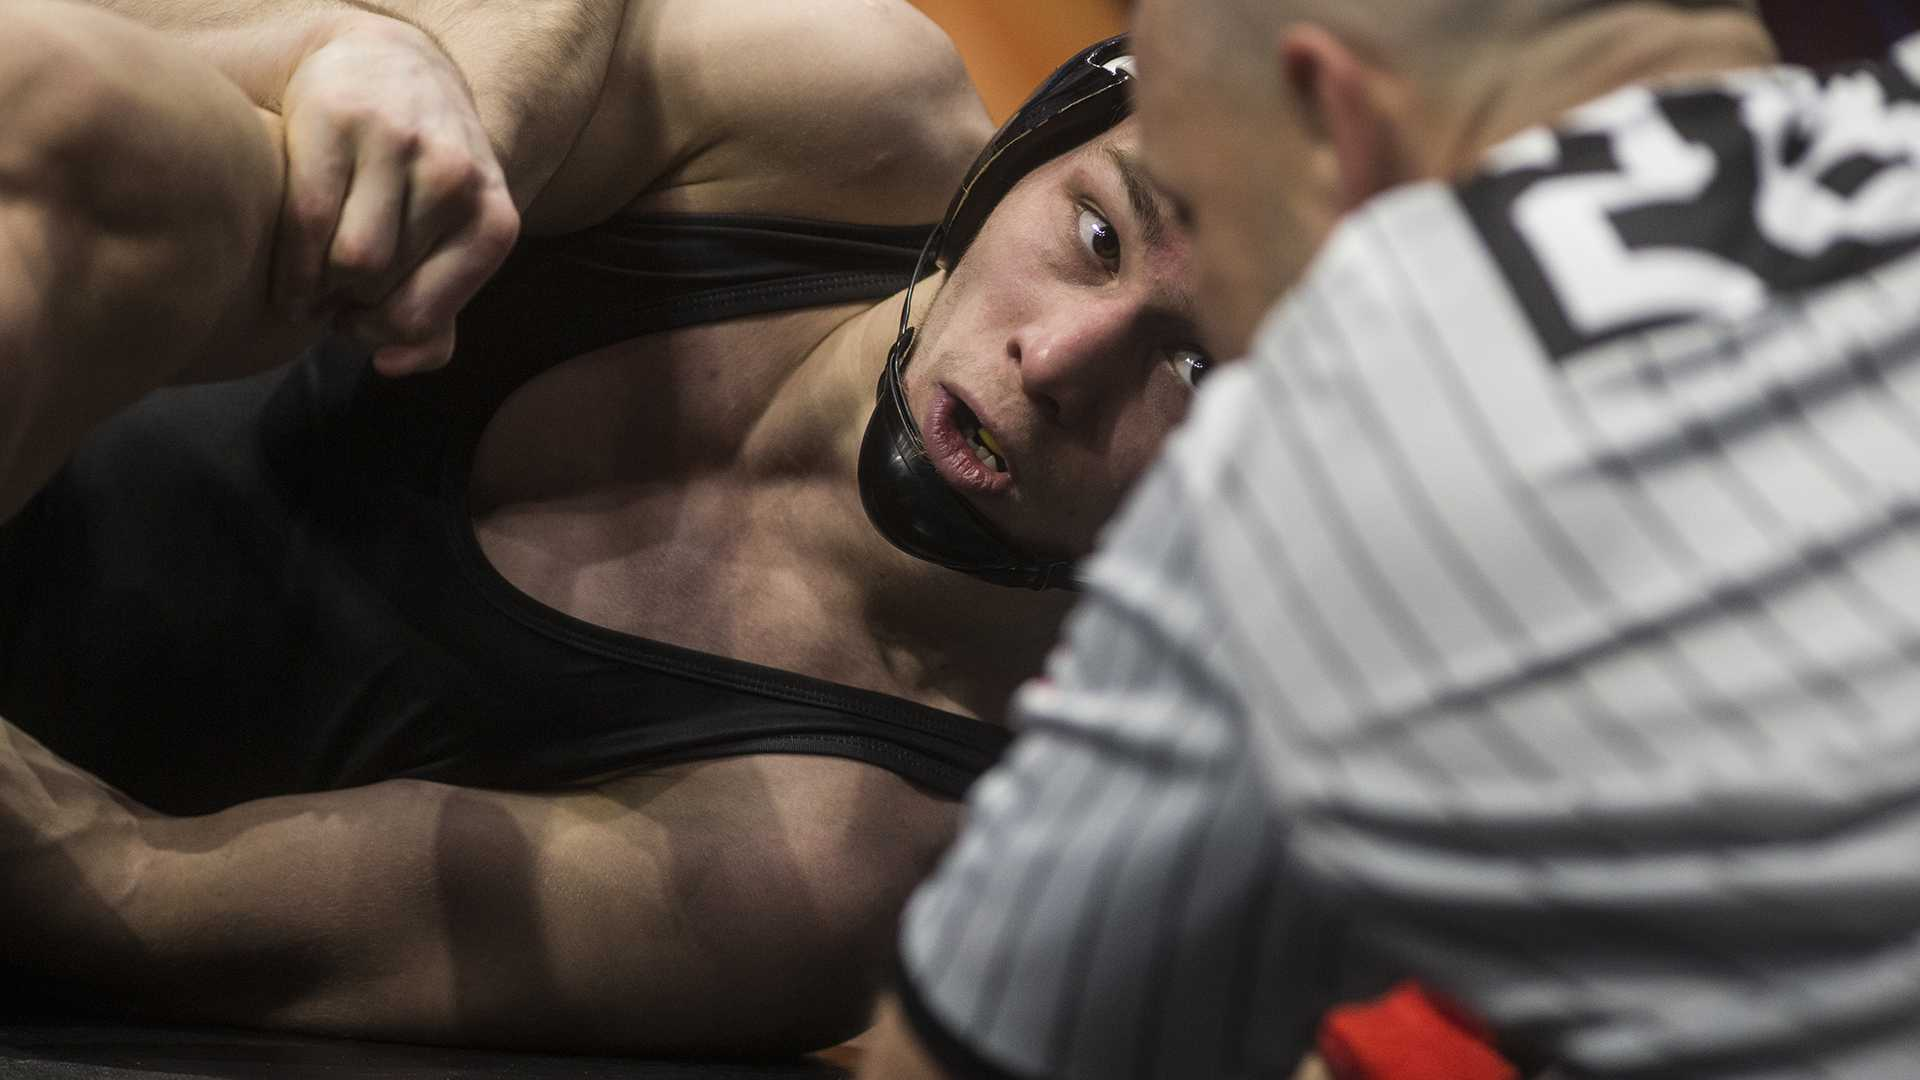 Iowa's 125-pound Spencer Lee looks to the ref during his match against Purdue's Luke Welch in Session 2 of the NCAA Division 1 Wrestling Championships at Quicken Loans Arena in Cleveland, Ohio on Thursday, March 15, 2018. Lee beat Welch by tech fall in 3:59. (Ben Allan Smith/The Daily Iowan)